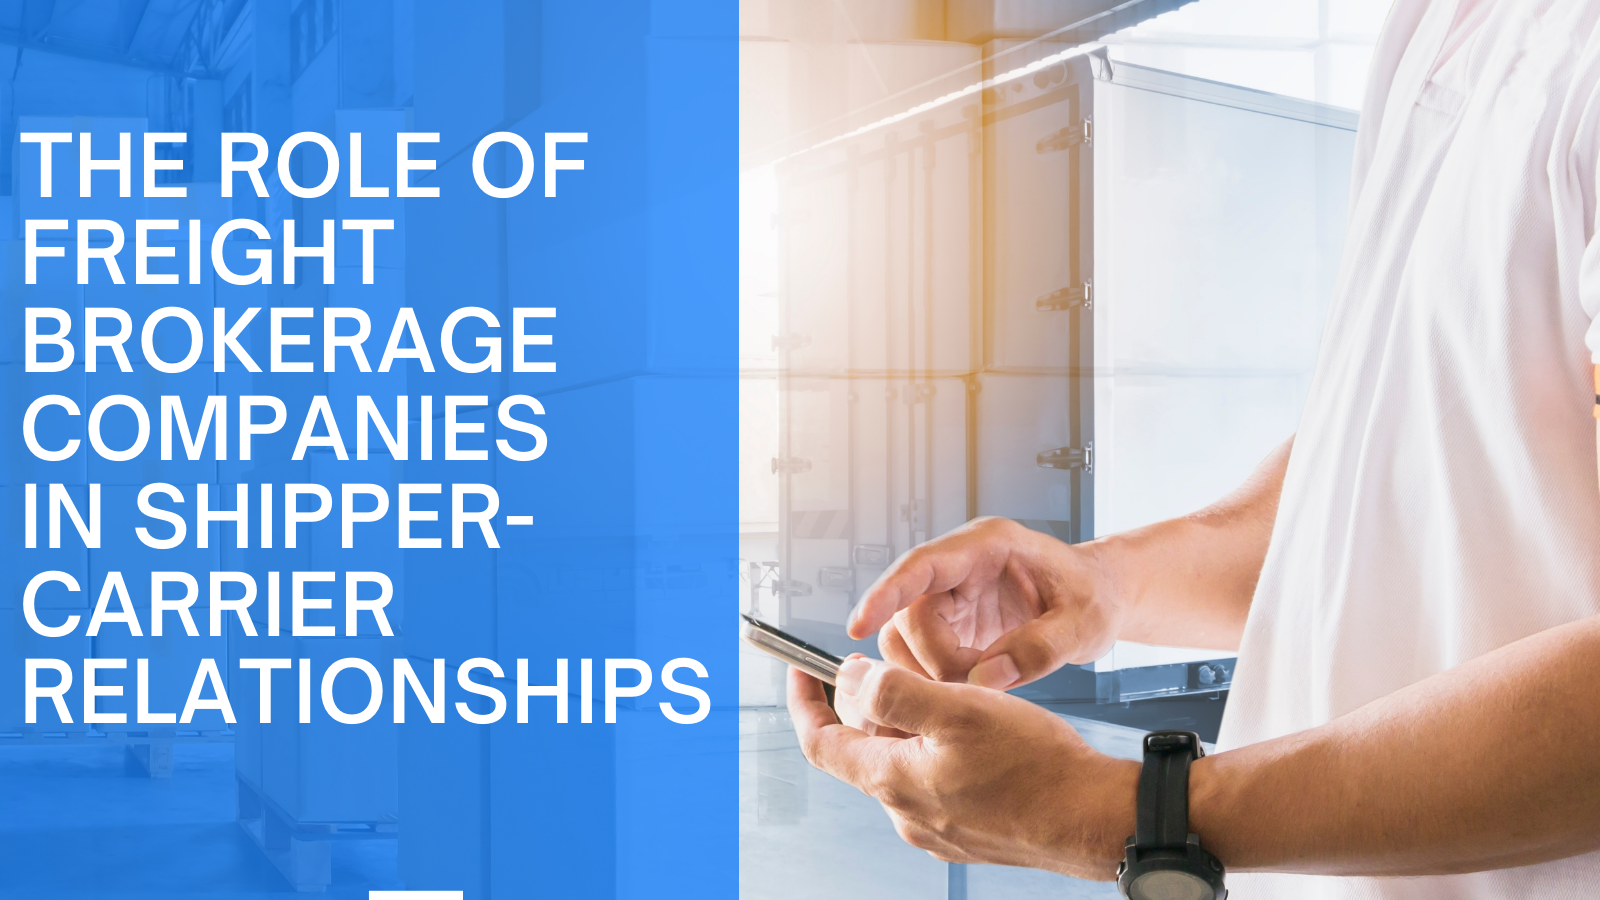 Freight Brokerage Companies and Shipper-Carrier Relationships